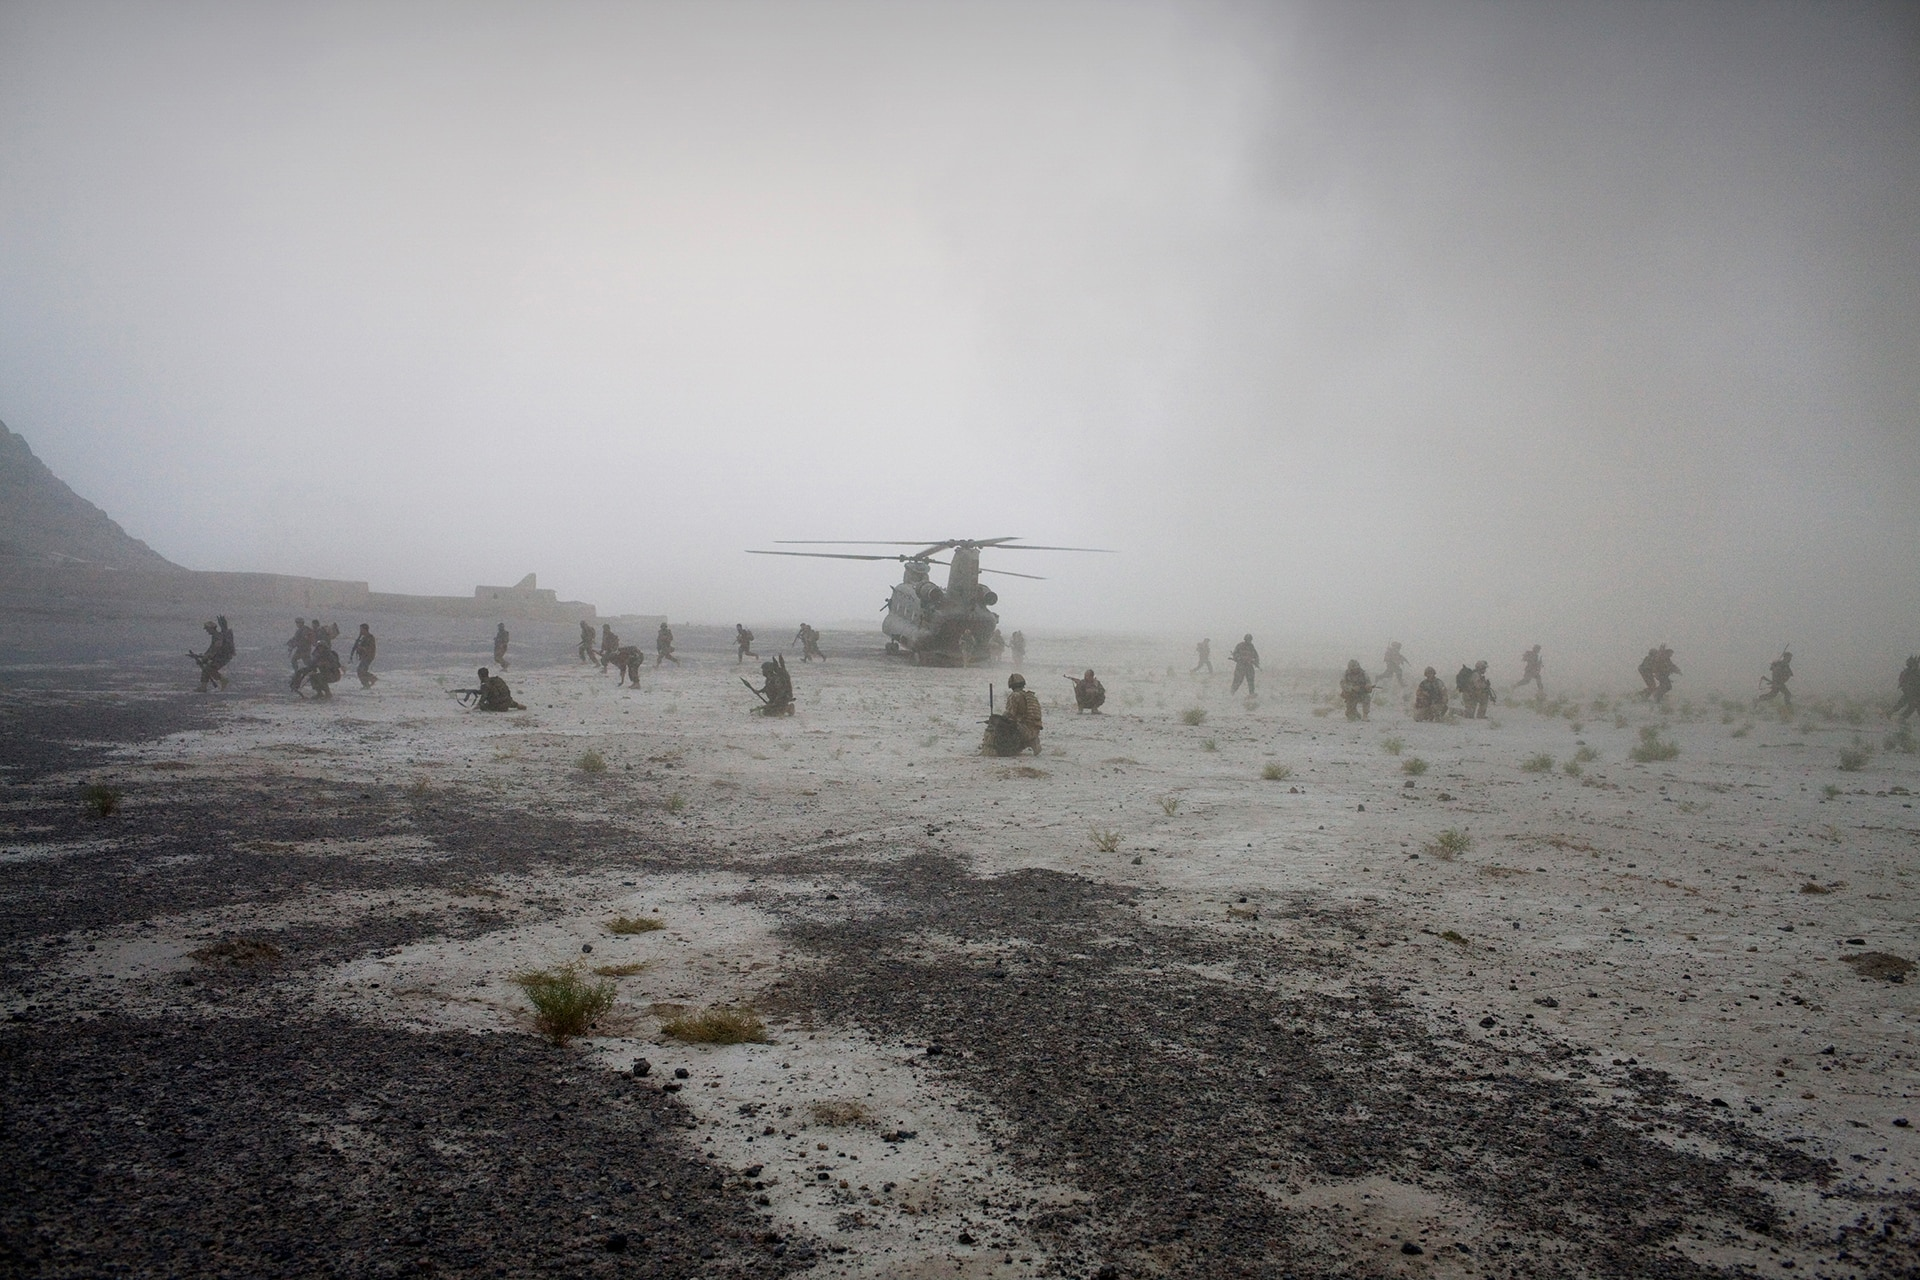 Joint Helicopter Force provide services to the troops on the ground